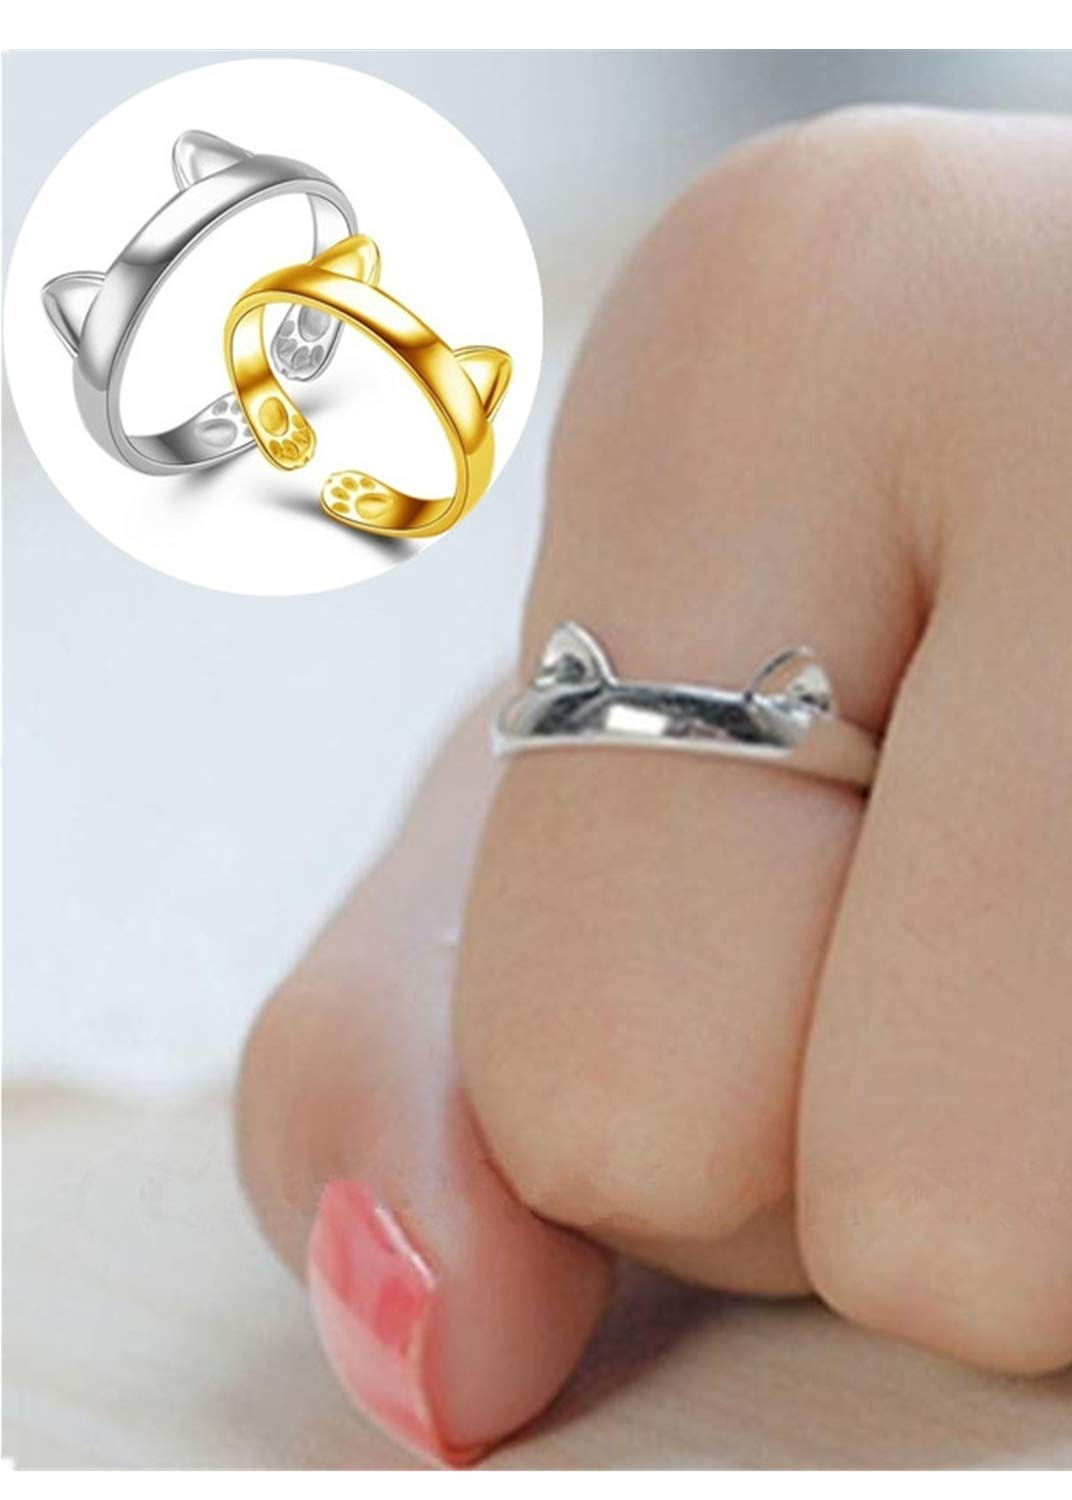 HUAMING Dragon Cat Gothic Ring,Sterling Silver Rings for Women, Adjustable Rings, Wrap Around Rings,Knuckle Rings Evening Party (Silver)